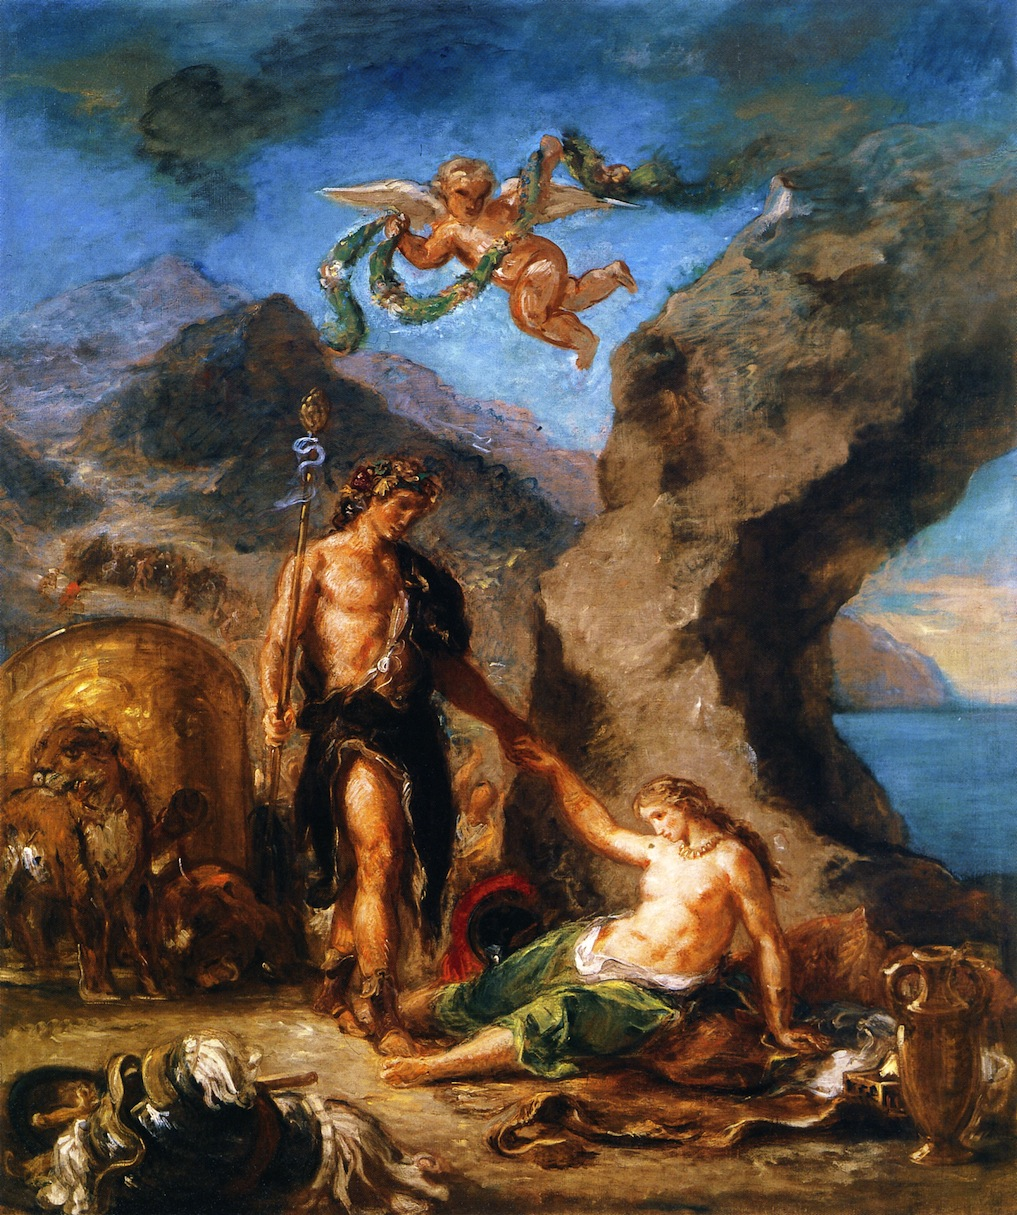 Autumn, Bacchus and Ariadne, Eugene Delacroix